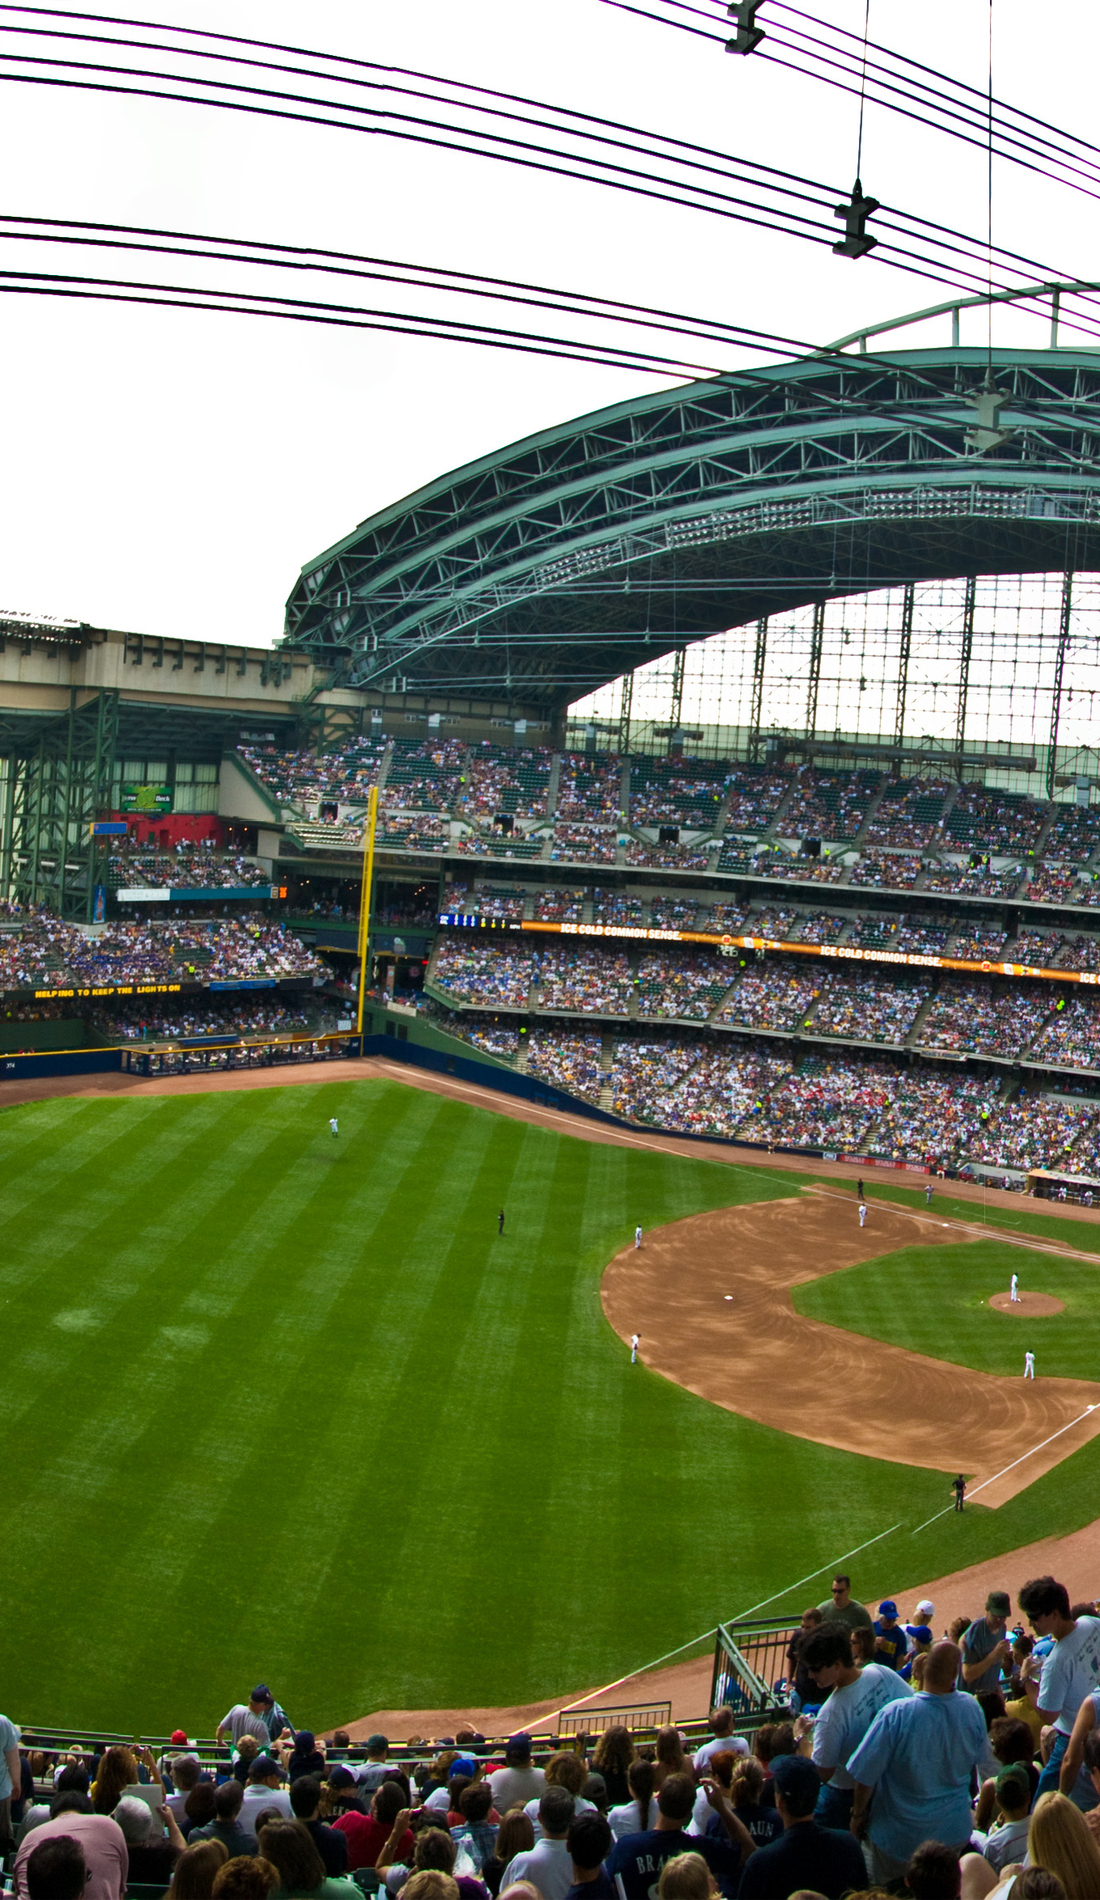 A Milwaukee Brewers live event